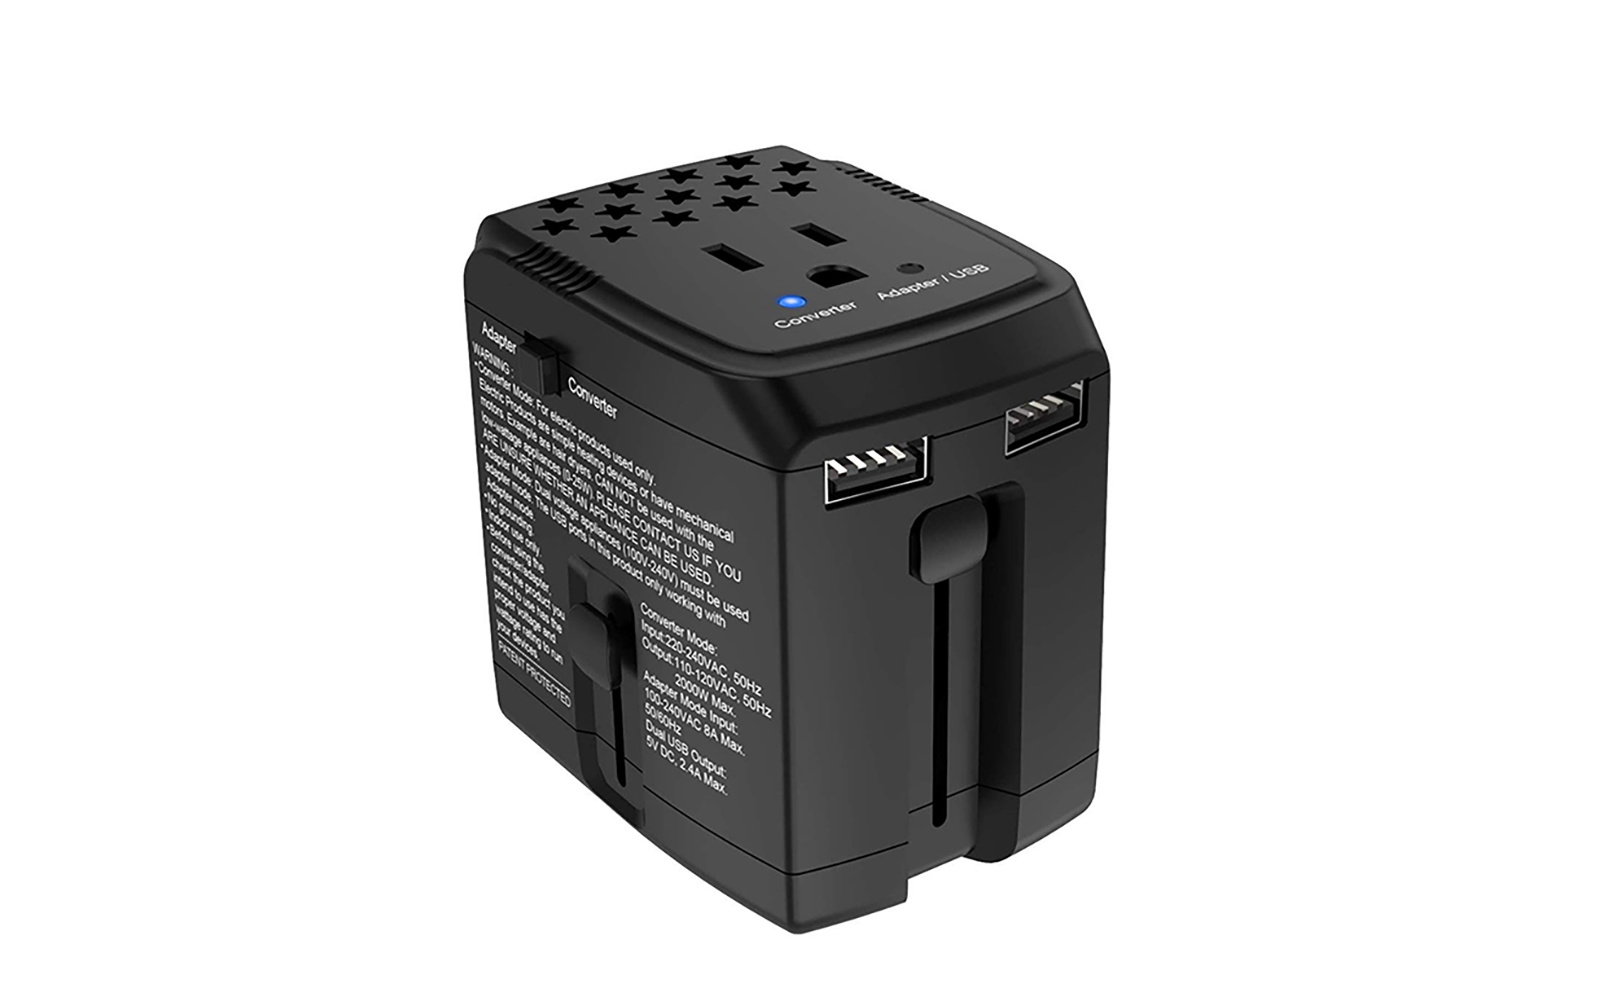 Bonazza travel adapter and converter